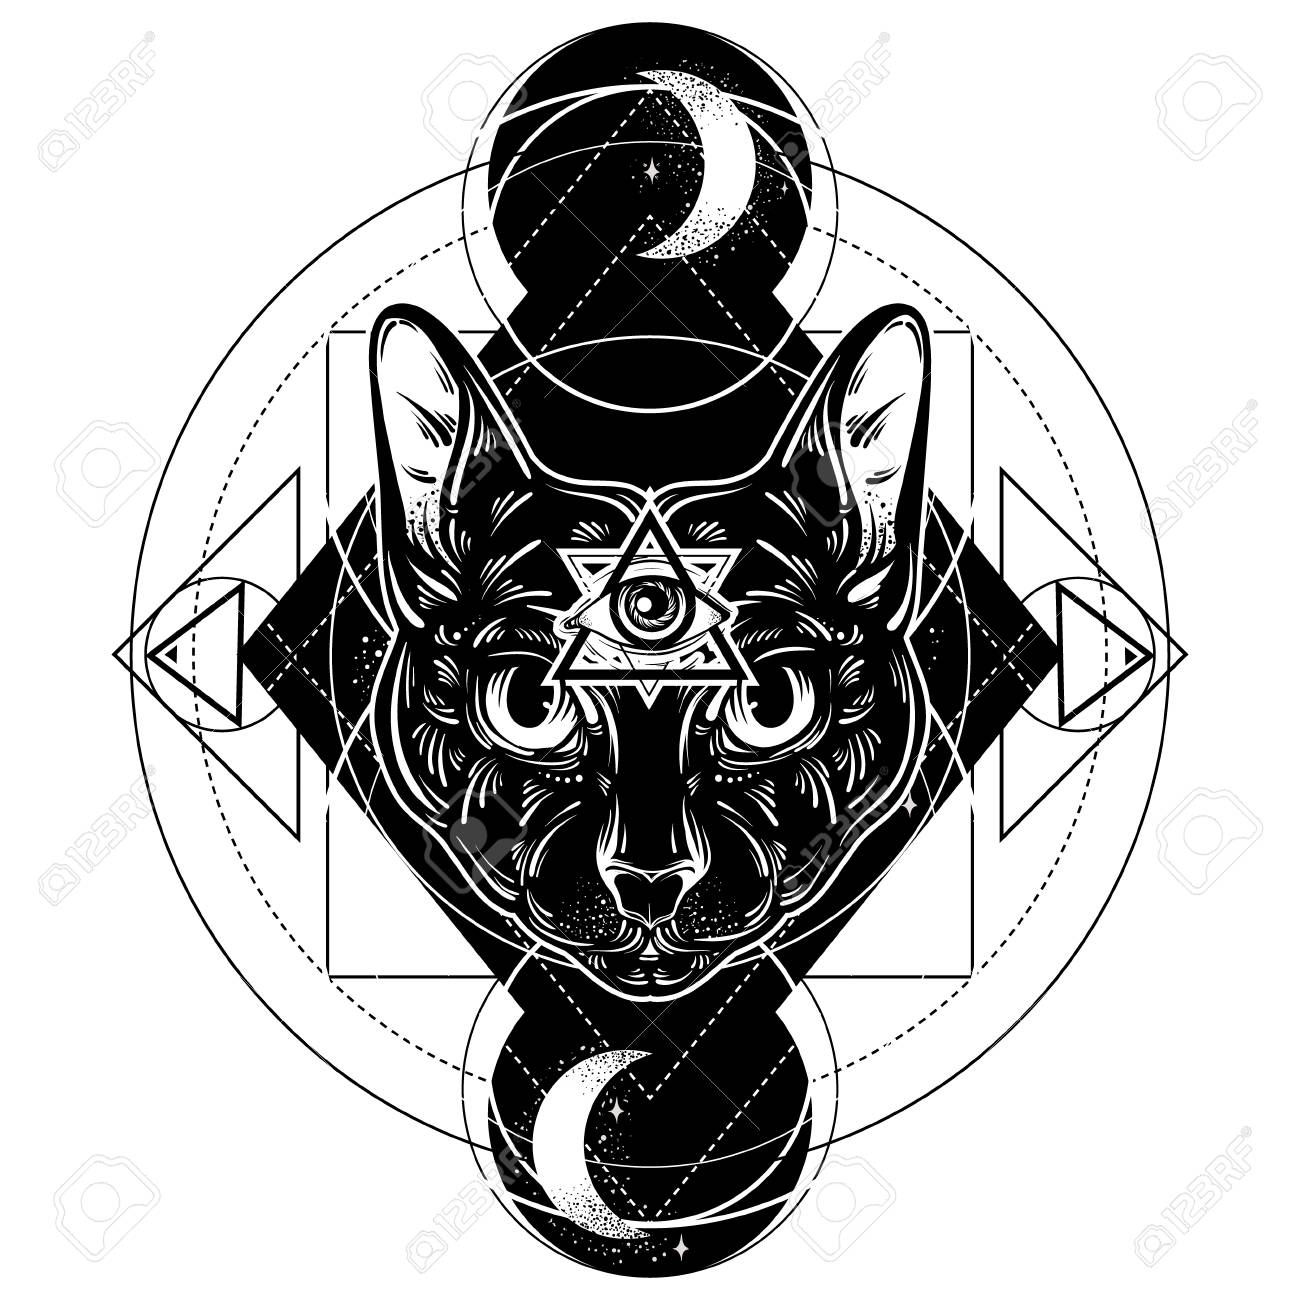 All Seeing Eye Pyramid Symbol Artwork With Portrait Of Mystical Elegant Cat Template For Card Poster Banner Print T Shirt